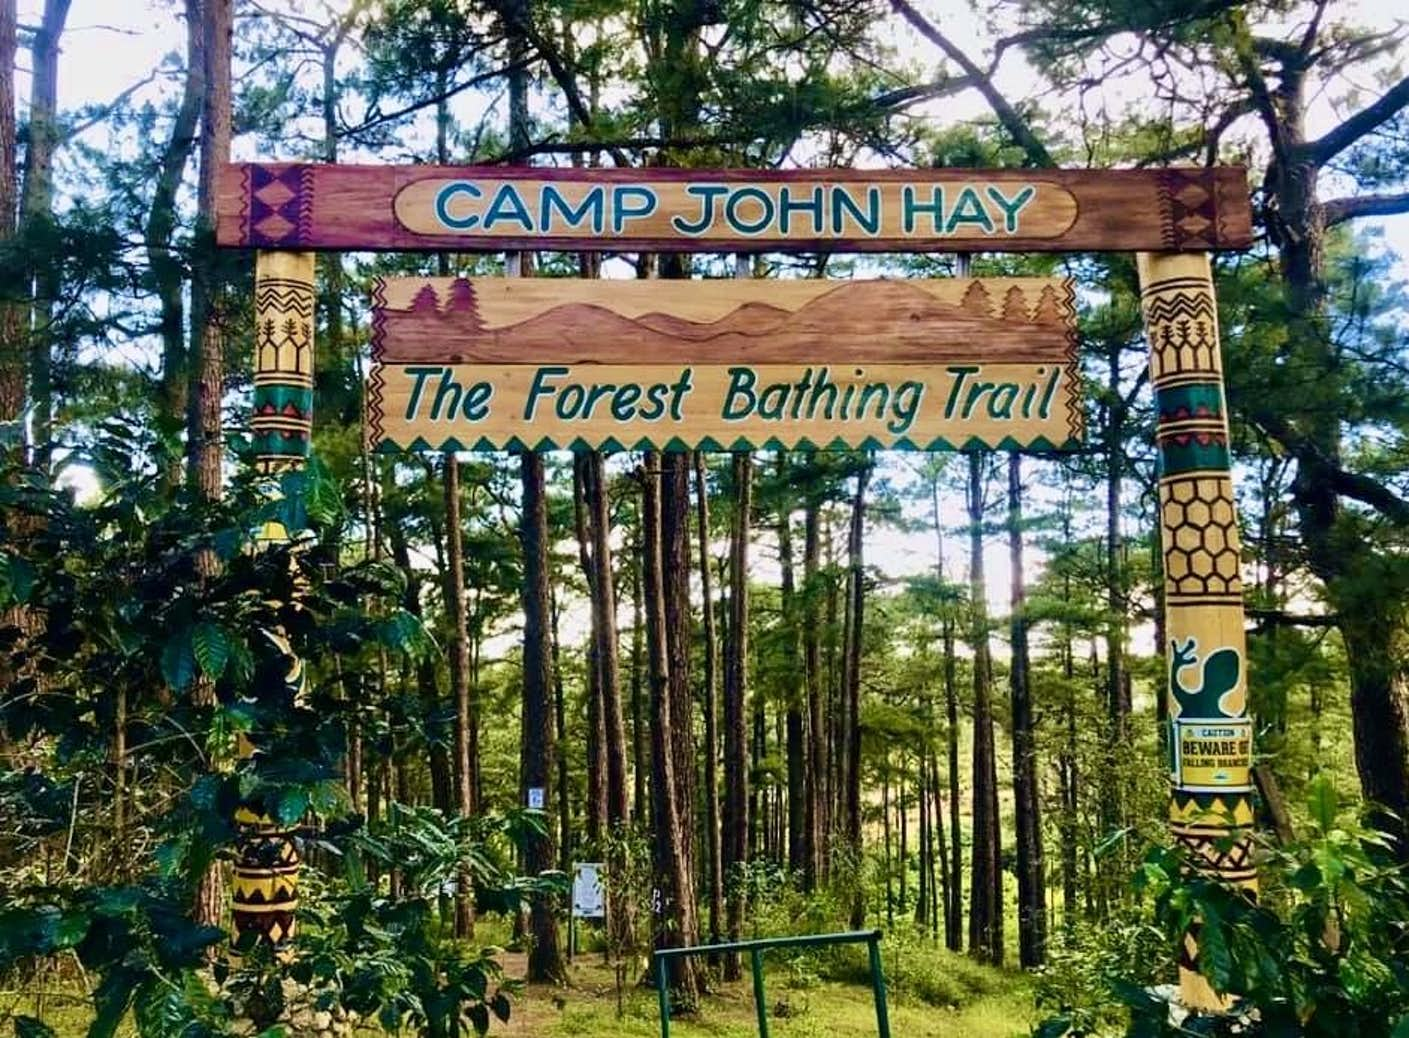 Entrance arc of Camp John Hay's Forest Bathing Trail